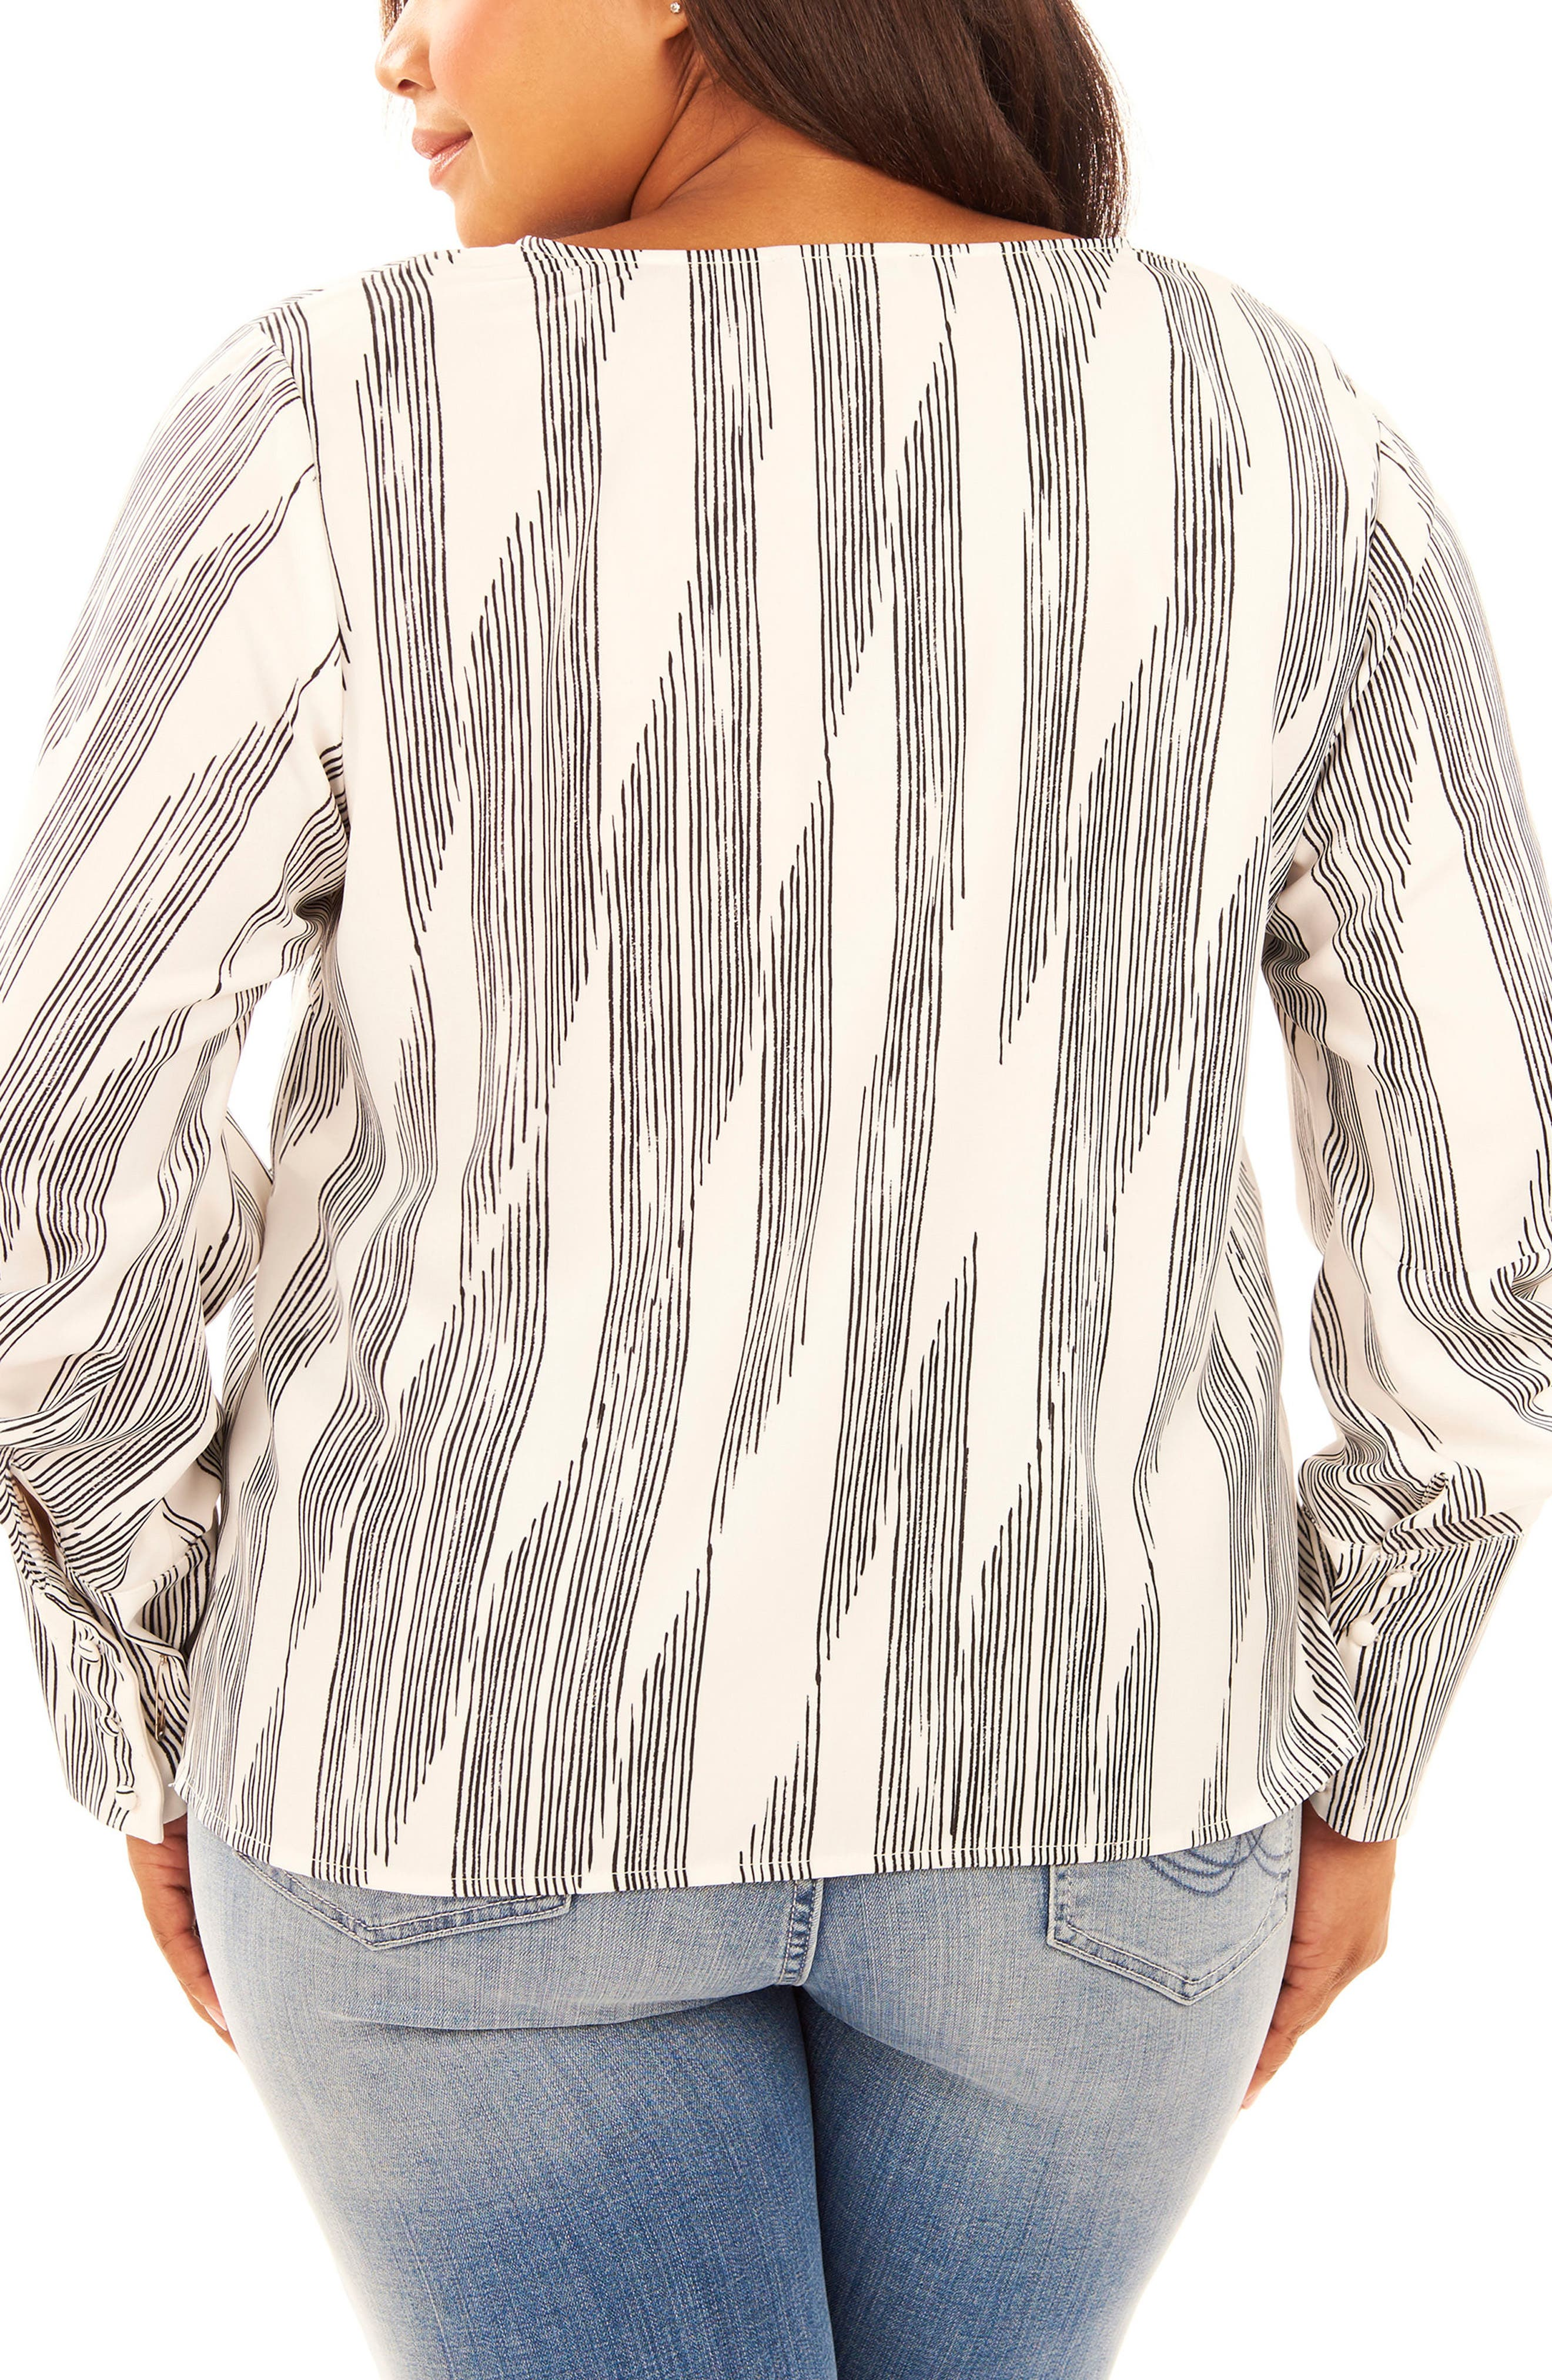 Print Pleated Sleeve Top,                             Alternate thumbnail 2, color,                             Pencil Lines